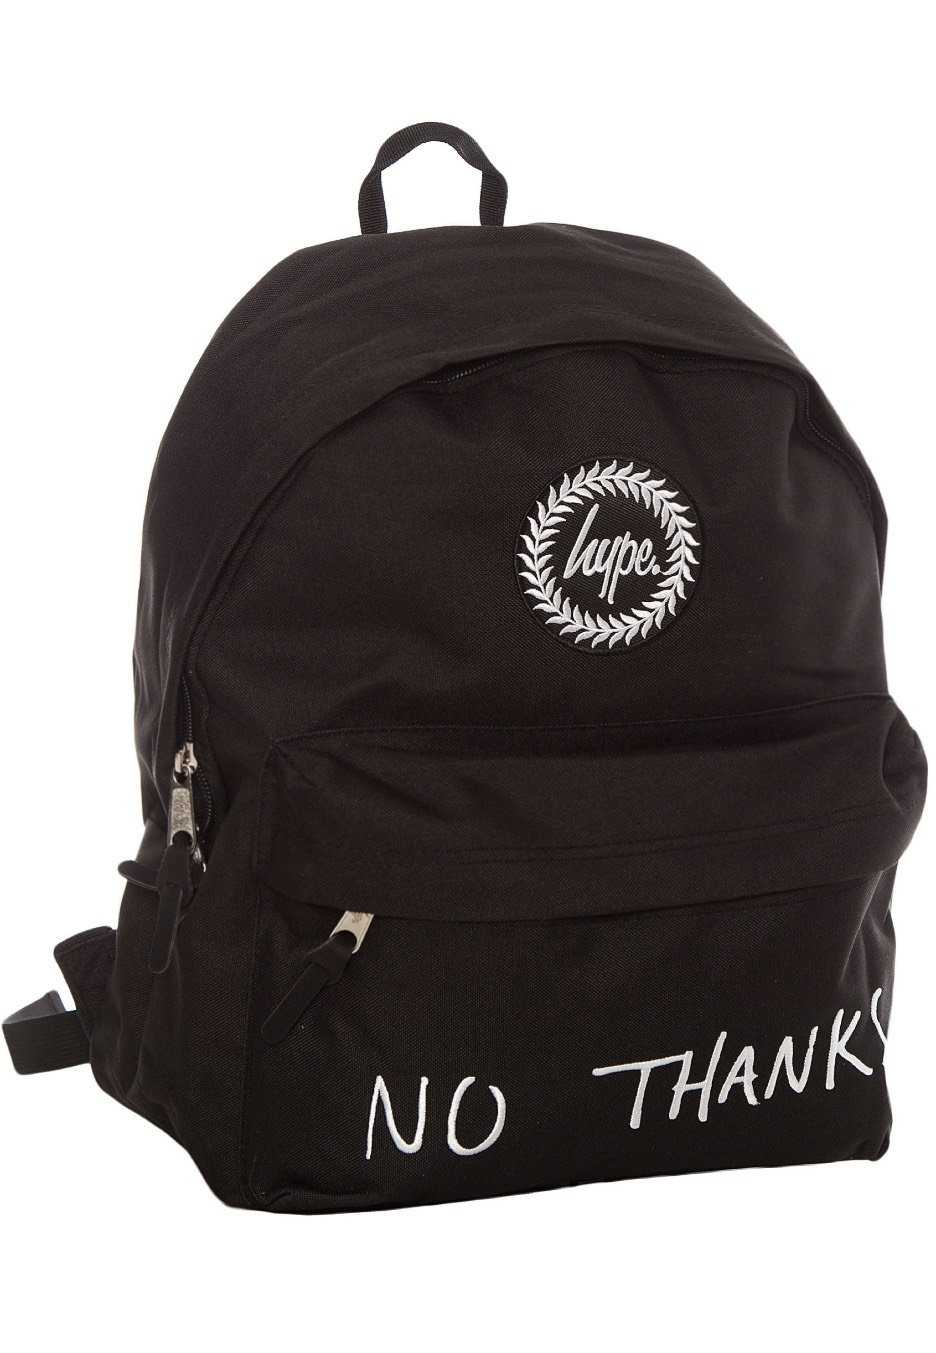 HYPE. - No Thanks Black White - Backpack - Streetwear Shop - Impericon.com  UK 6137fcc490